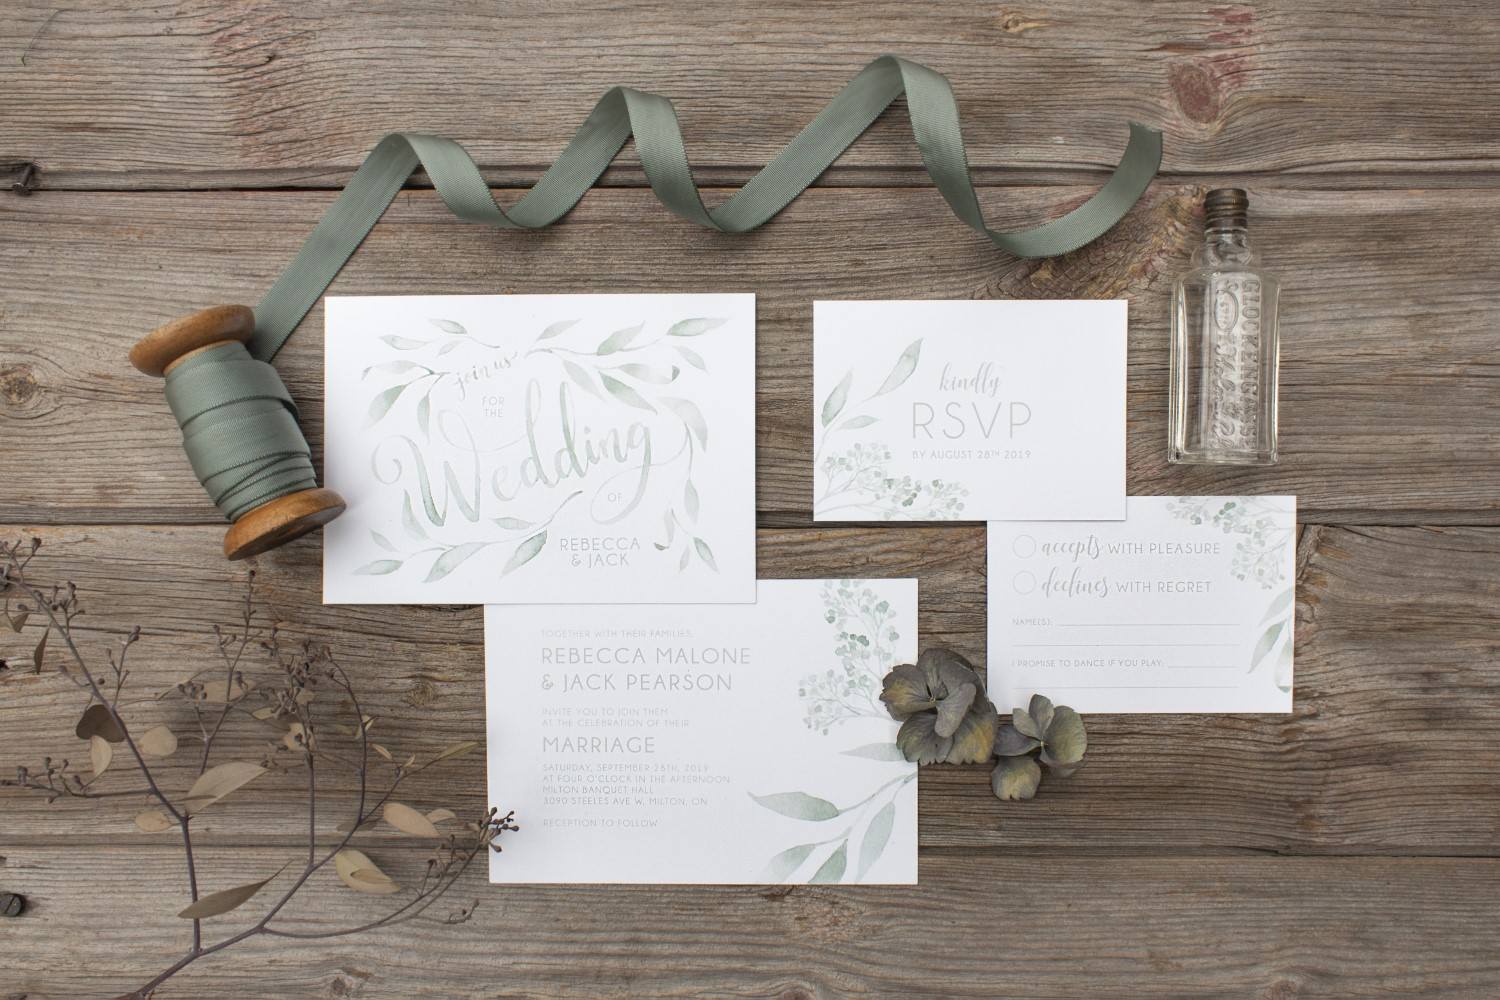 Monochromatic Blush or Teal Watercolour Leaves and Typography Wedding Invitations by Alicia's Infinity - www.aliciasinfinity.com